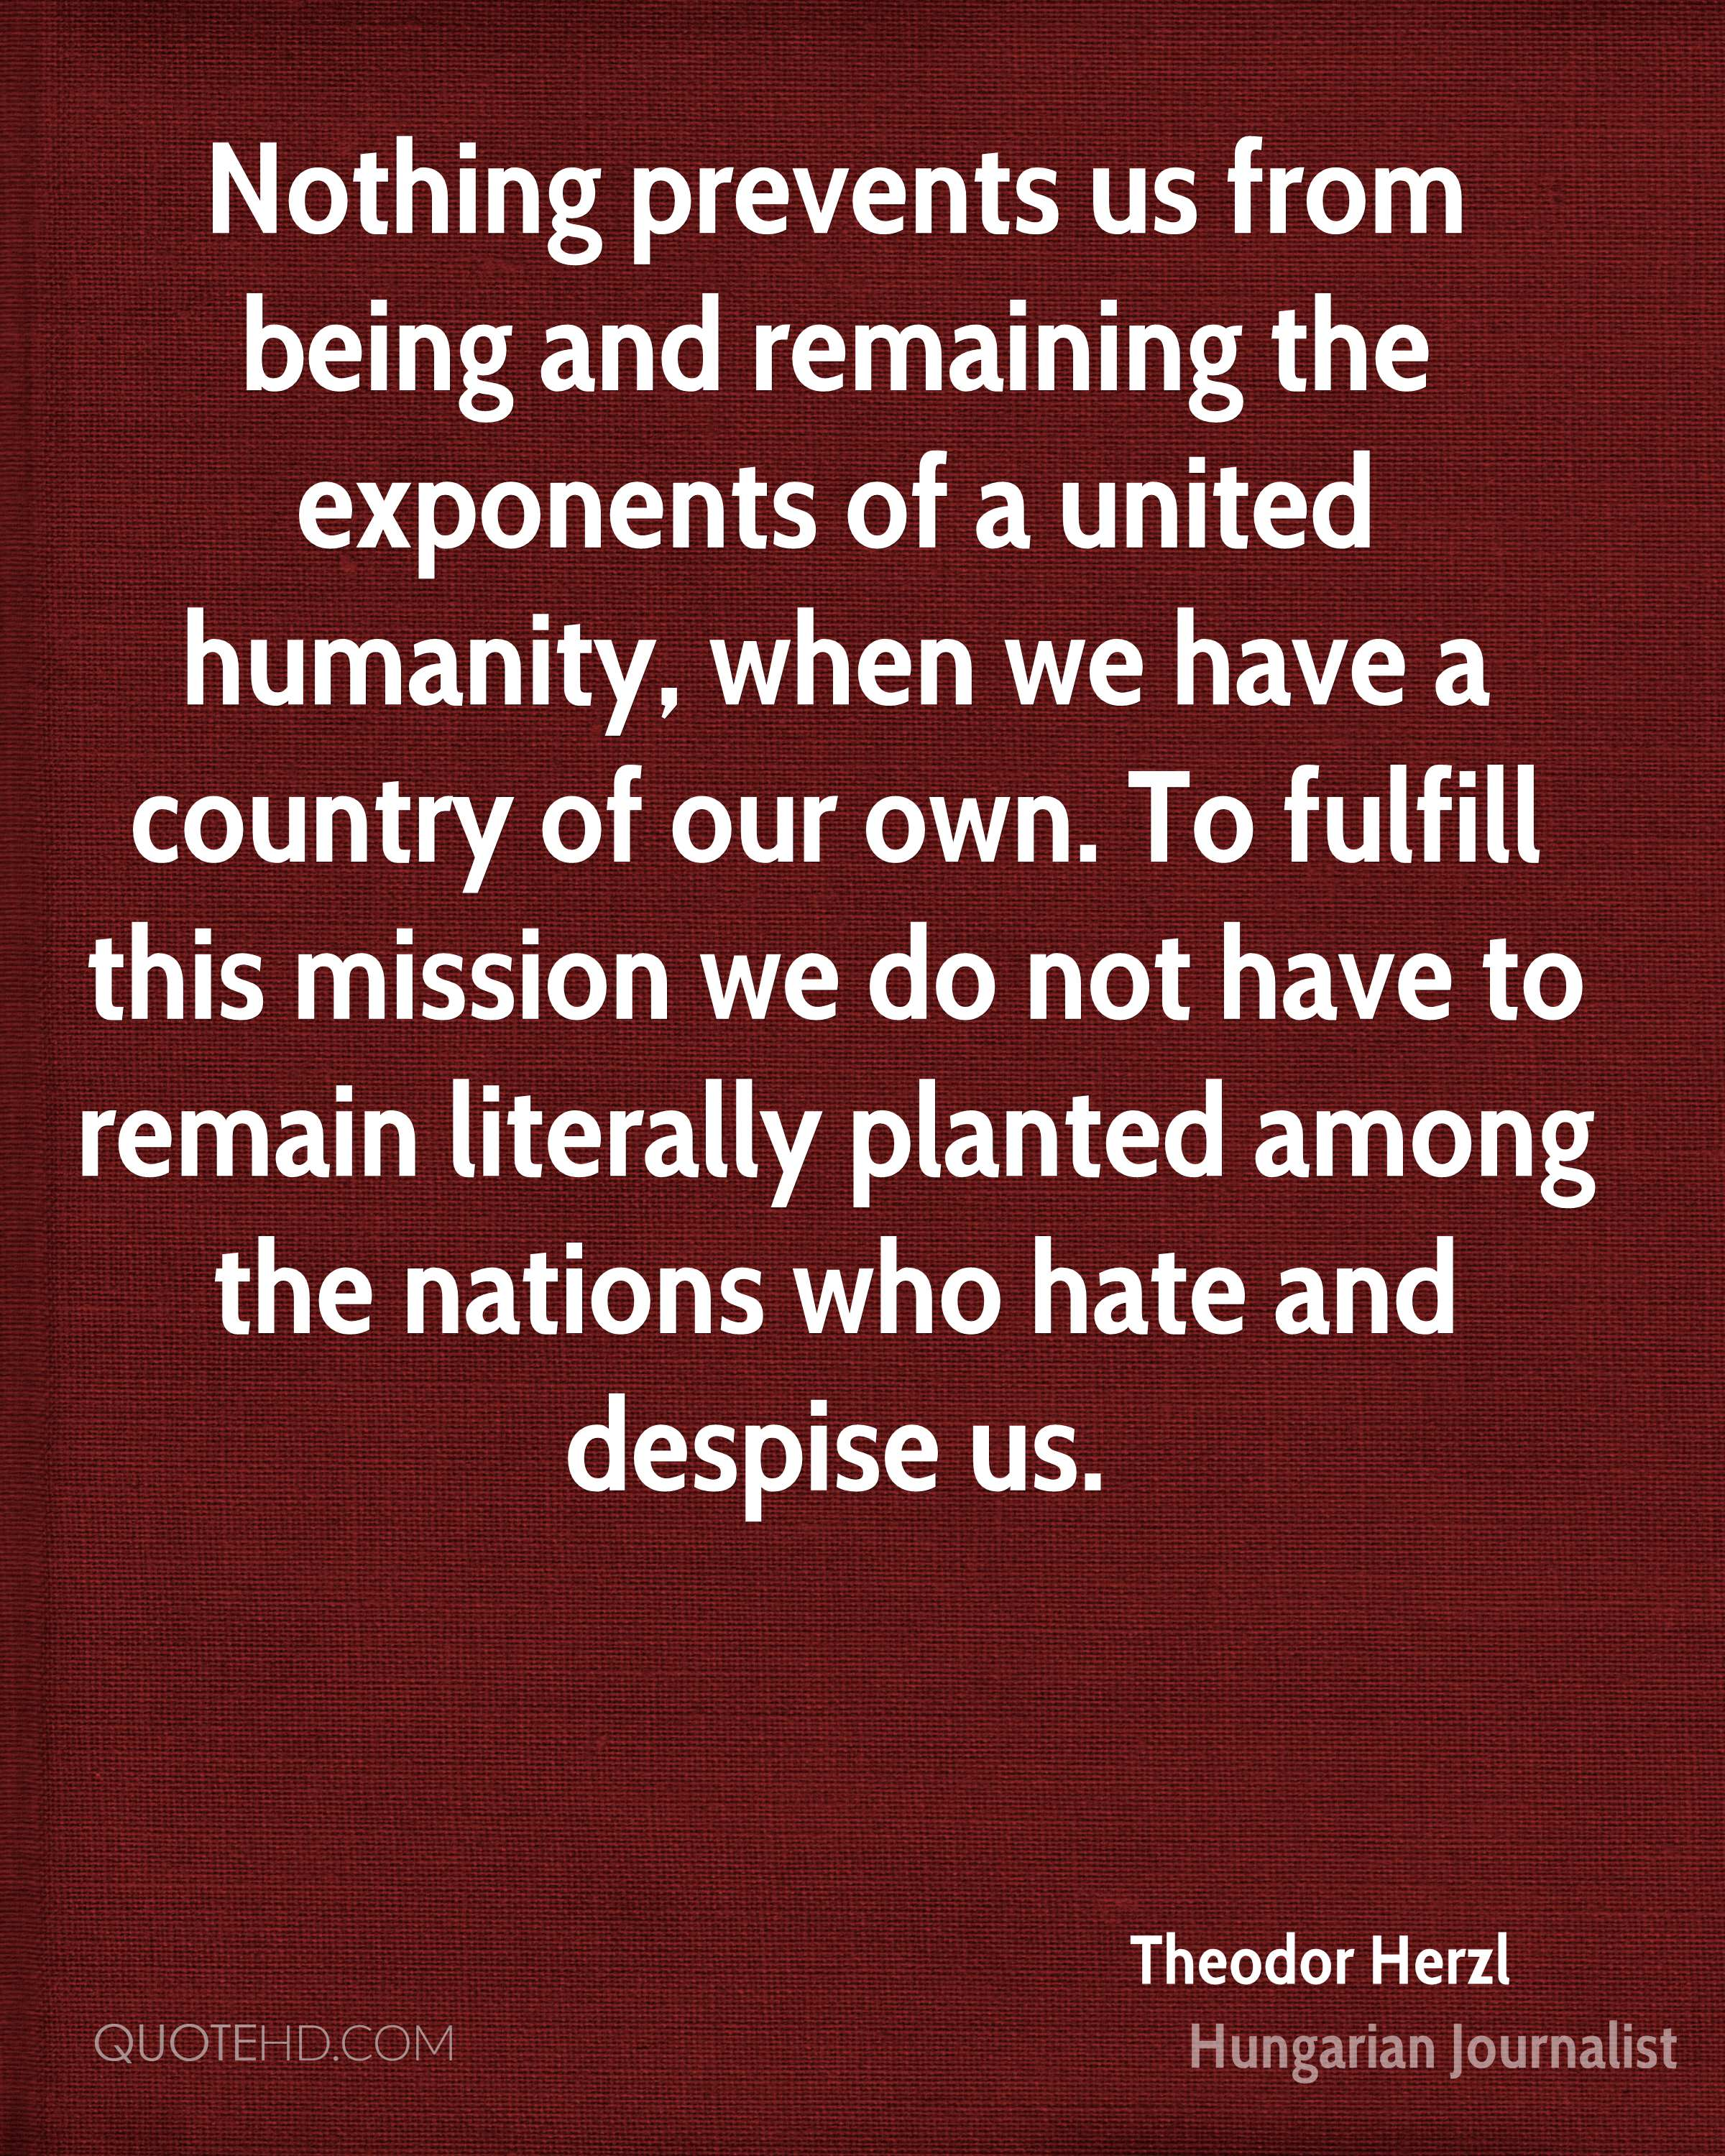 Nothing prevents us from being and remaining the exponents of a united humanity, when we have a country of our own. To fulfill this mission we do not have to remain literally planted among the nations who hate and despise us.